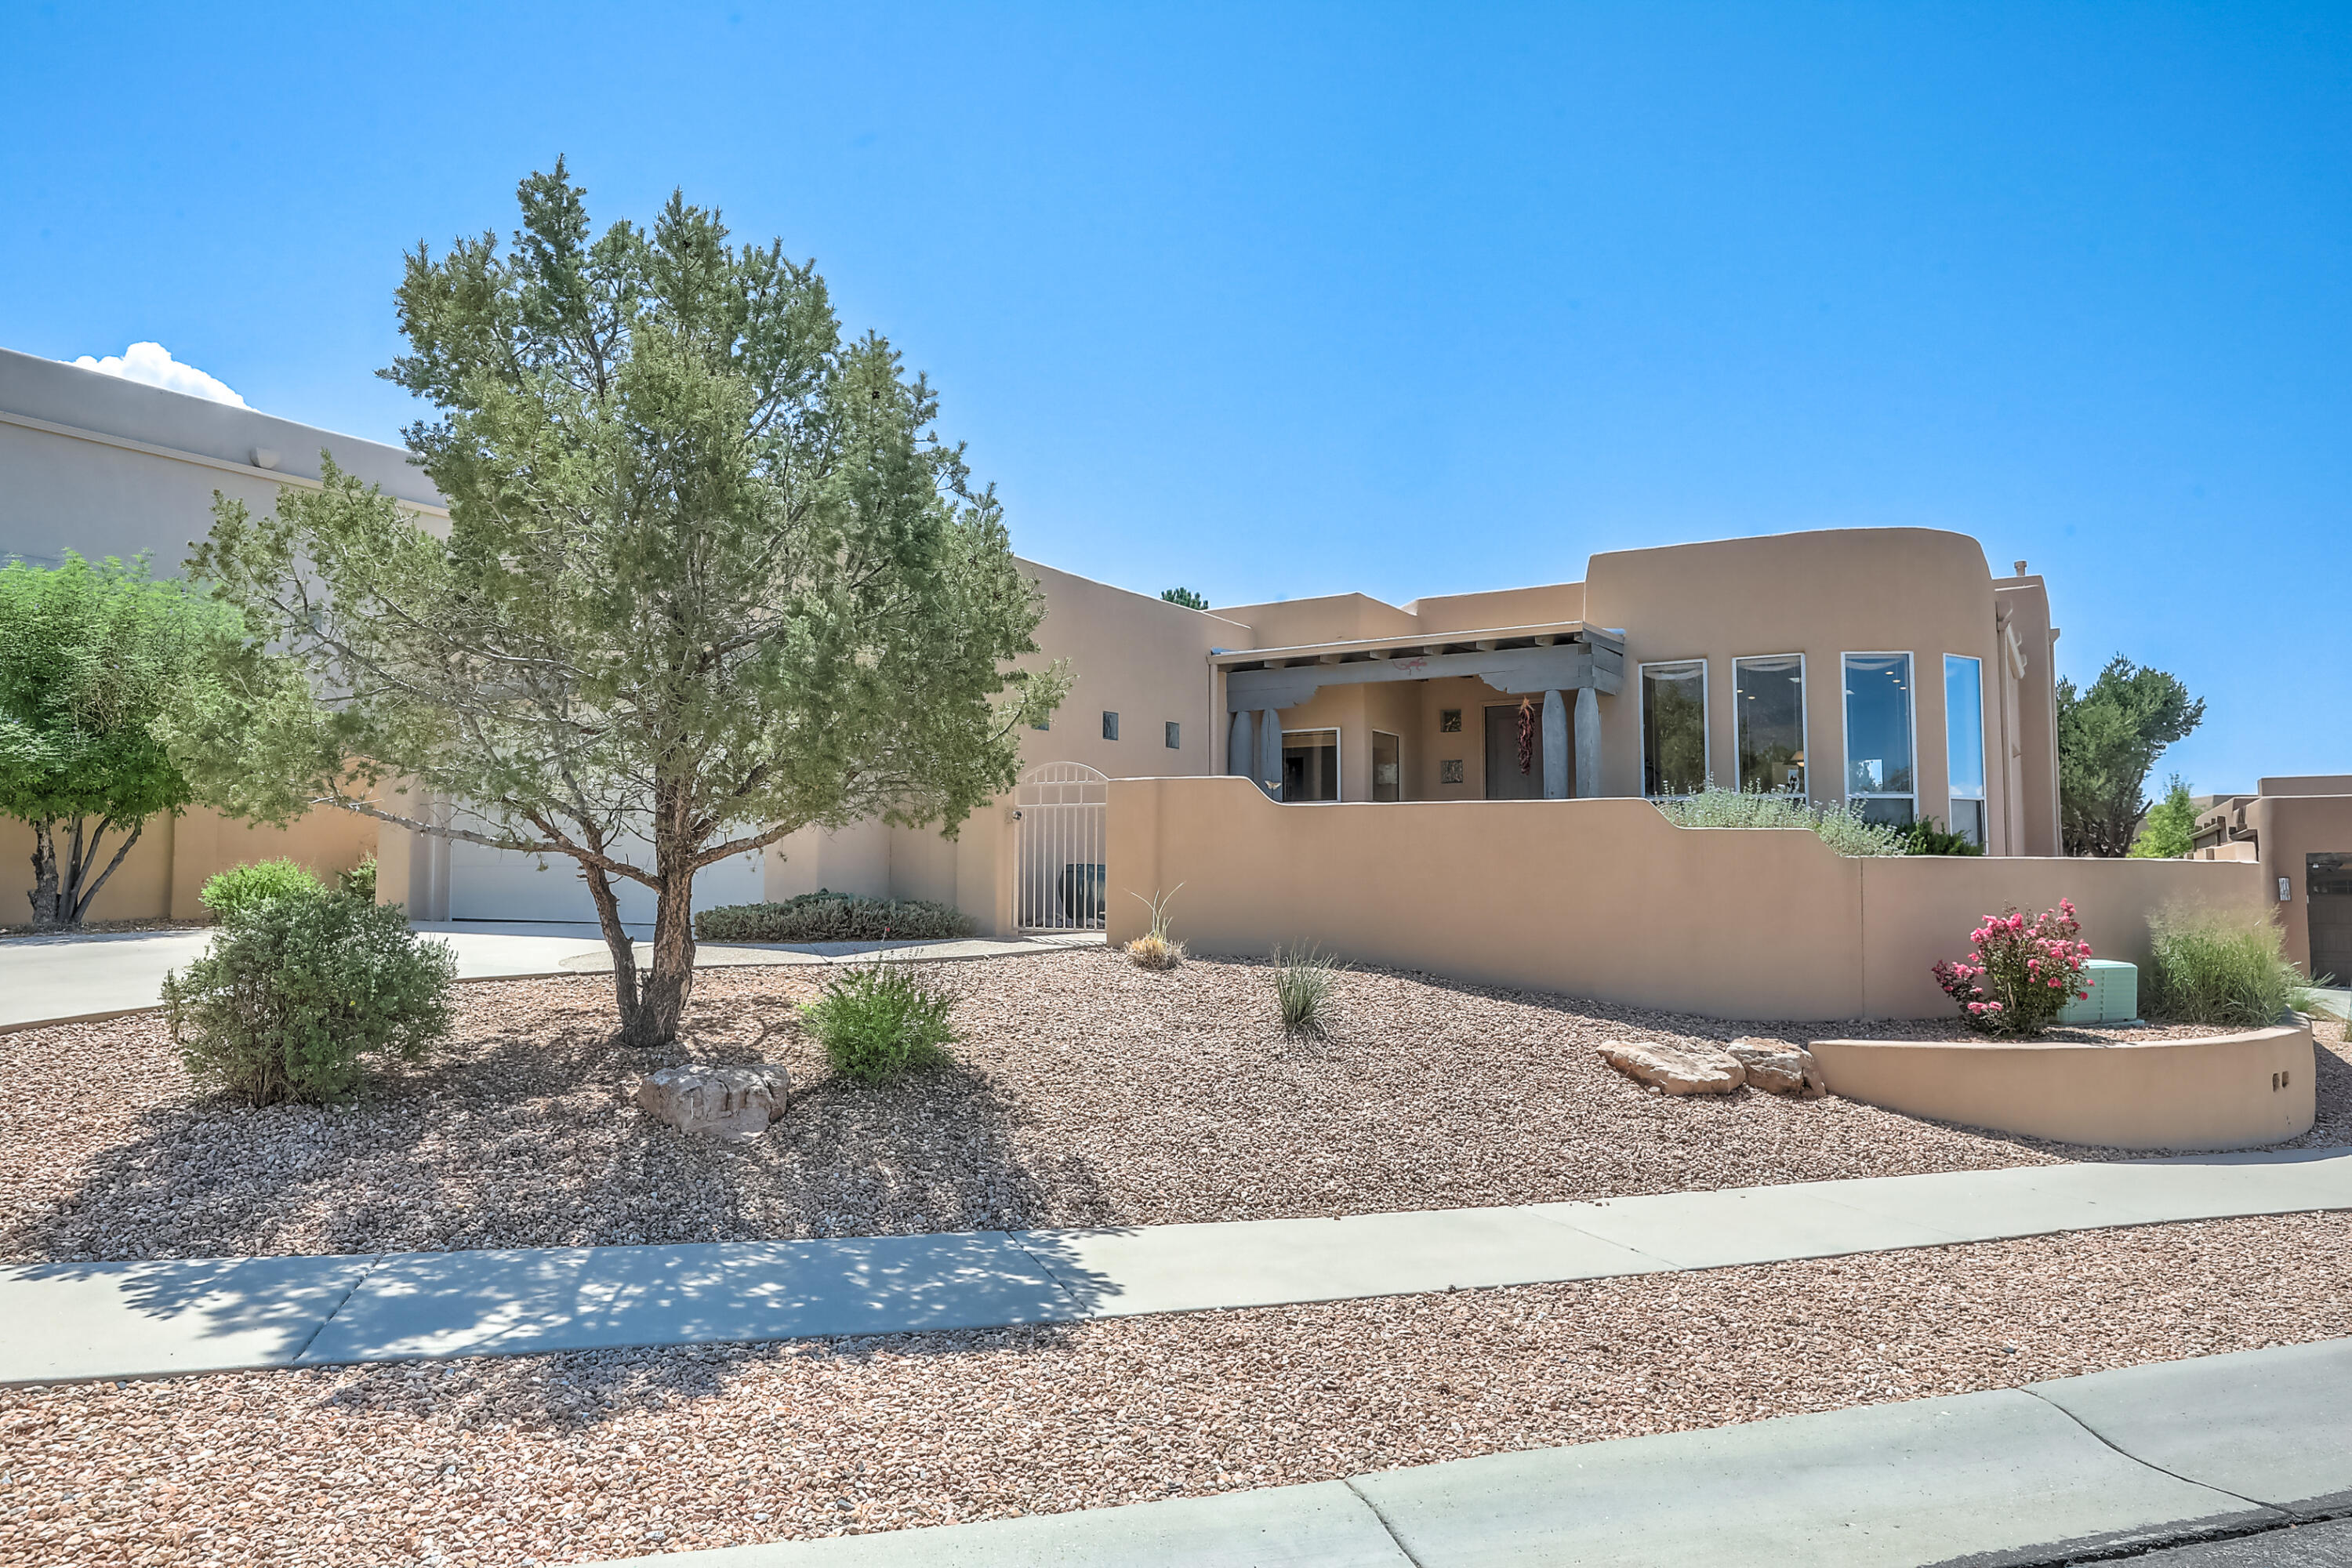 This beautiful Scott Patrick home in High Desert is absolutely spectacular and needs to be seen! Natural light floods the interior through glass skylights that were installed in 2020 along with a new roof (also installed 2020). This single story custom home is situated on 0.25 acres and has plenty of space for everyone with 2900 sq ft of living area. Mountain views from the breakfast nook & a great entertaining space flows between the kitchen and living room for those large gatherings. The owner's suite has a separate tub and shower and big walk-in closet. Ample additional bedrooms and bathrooms for everyone; Jack & Jill bath for beds 2 & 3 or a guest room with 3/4 bath access. The tandem garage parking means you can fit 3 vehicles to optimize your use of space. Schedule a showing today!